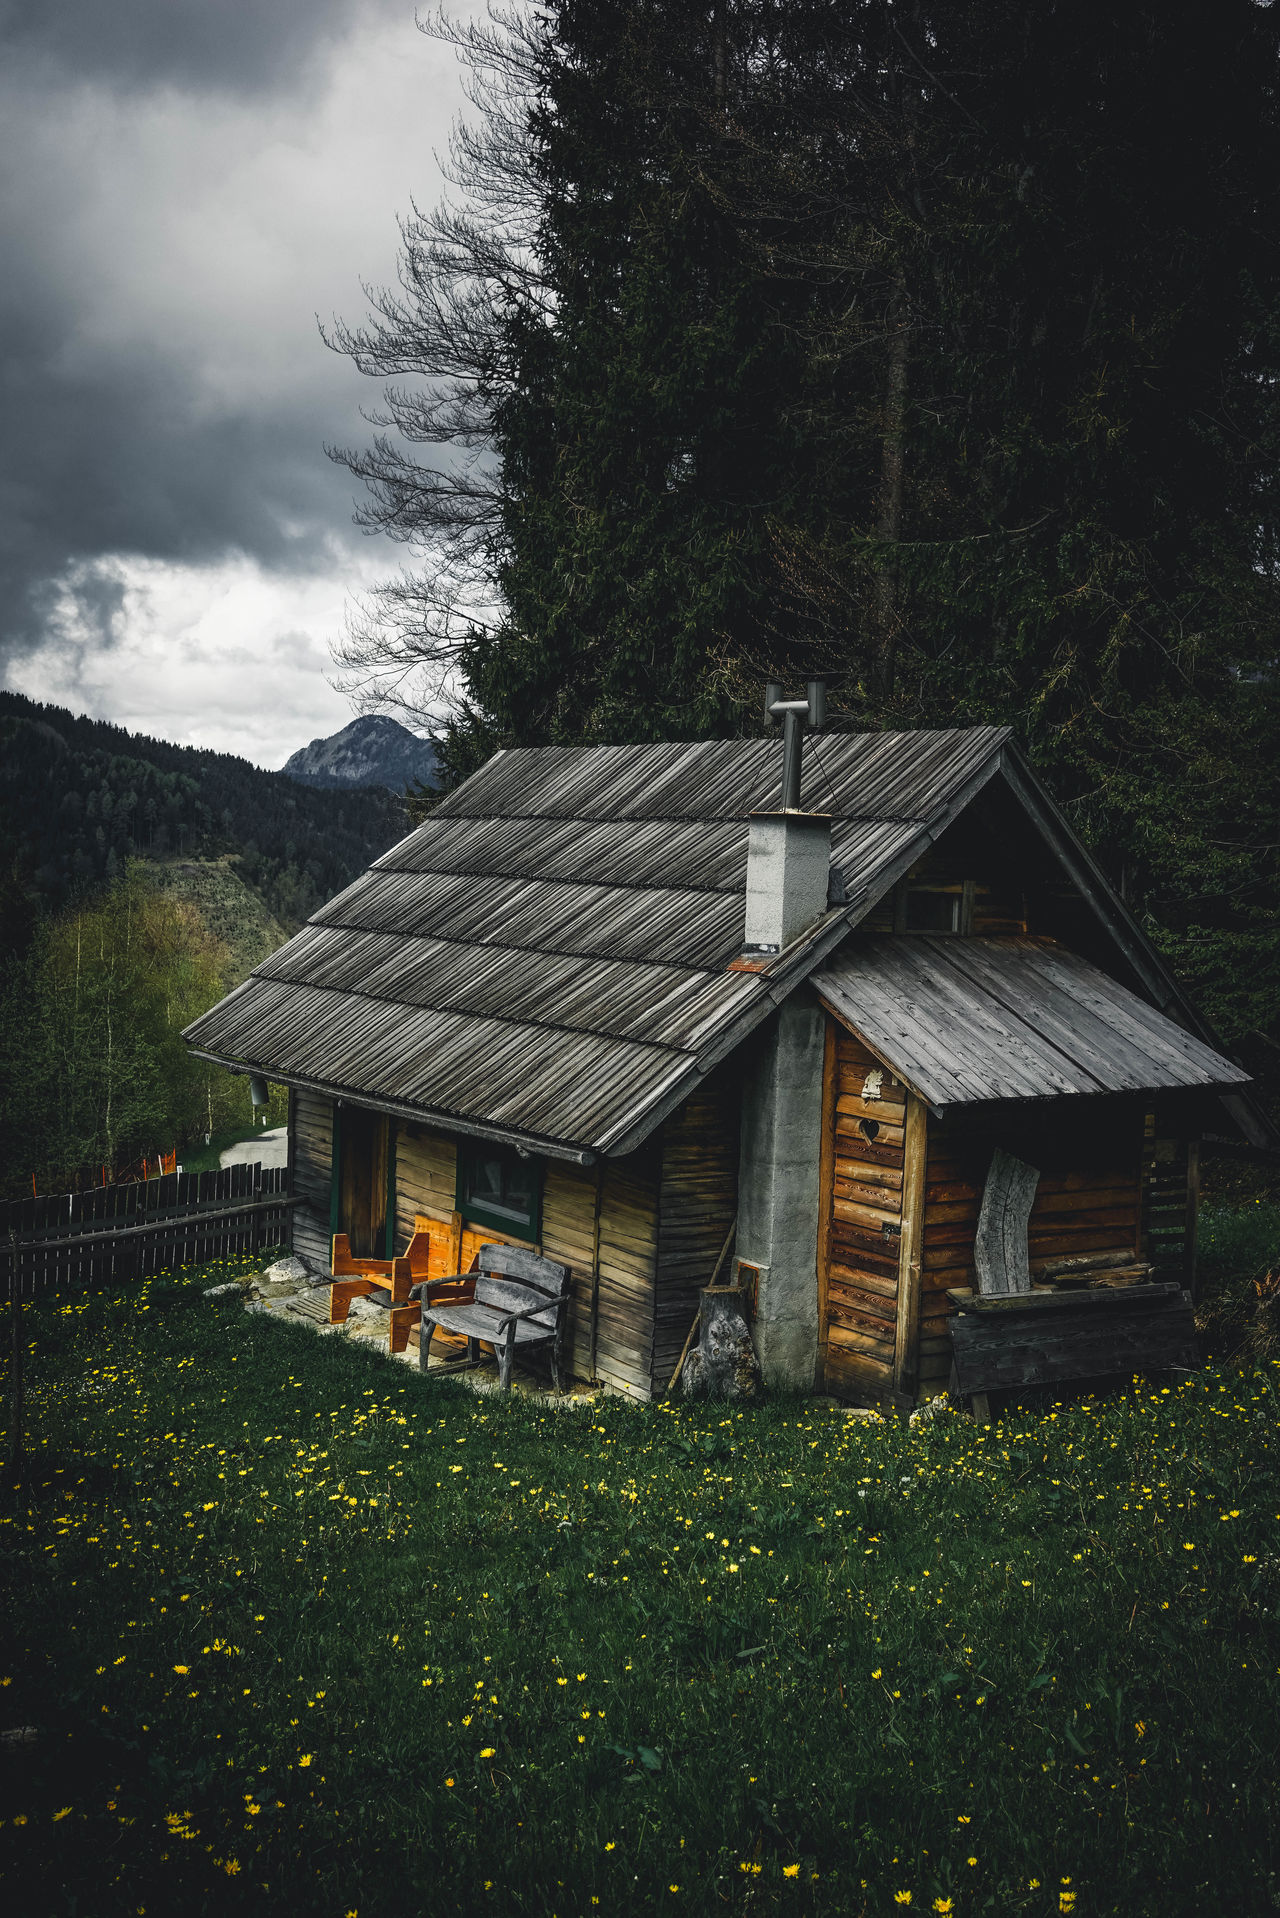 Architecture Building Exterior Built Structure Country House Folk Grass Green Landscape Mood Moody Sky Mountain Natural Beauty Nature Nature Photography Nature_collection Naturelovers Naturephotography No People Outdoor Photography Outdoors Sony Sonyalpha Wood Wood - Material Wooden House